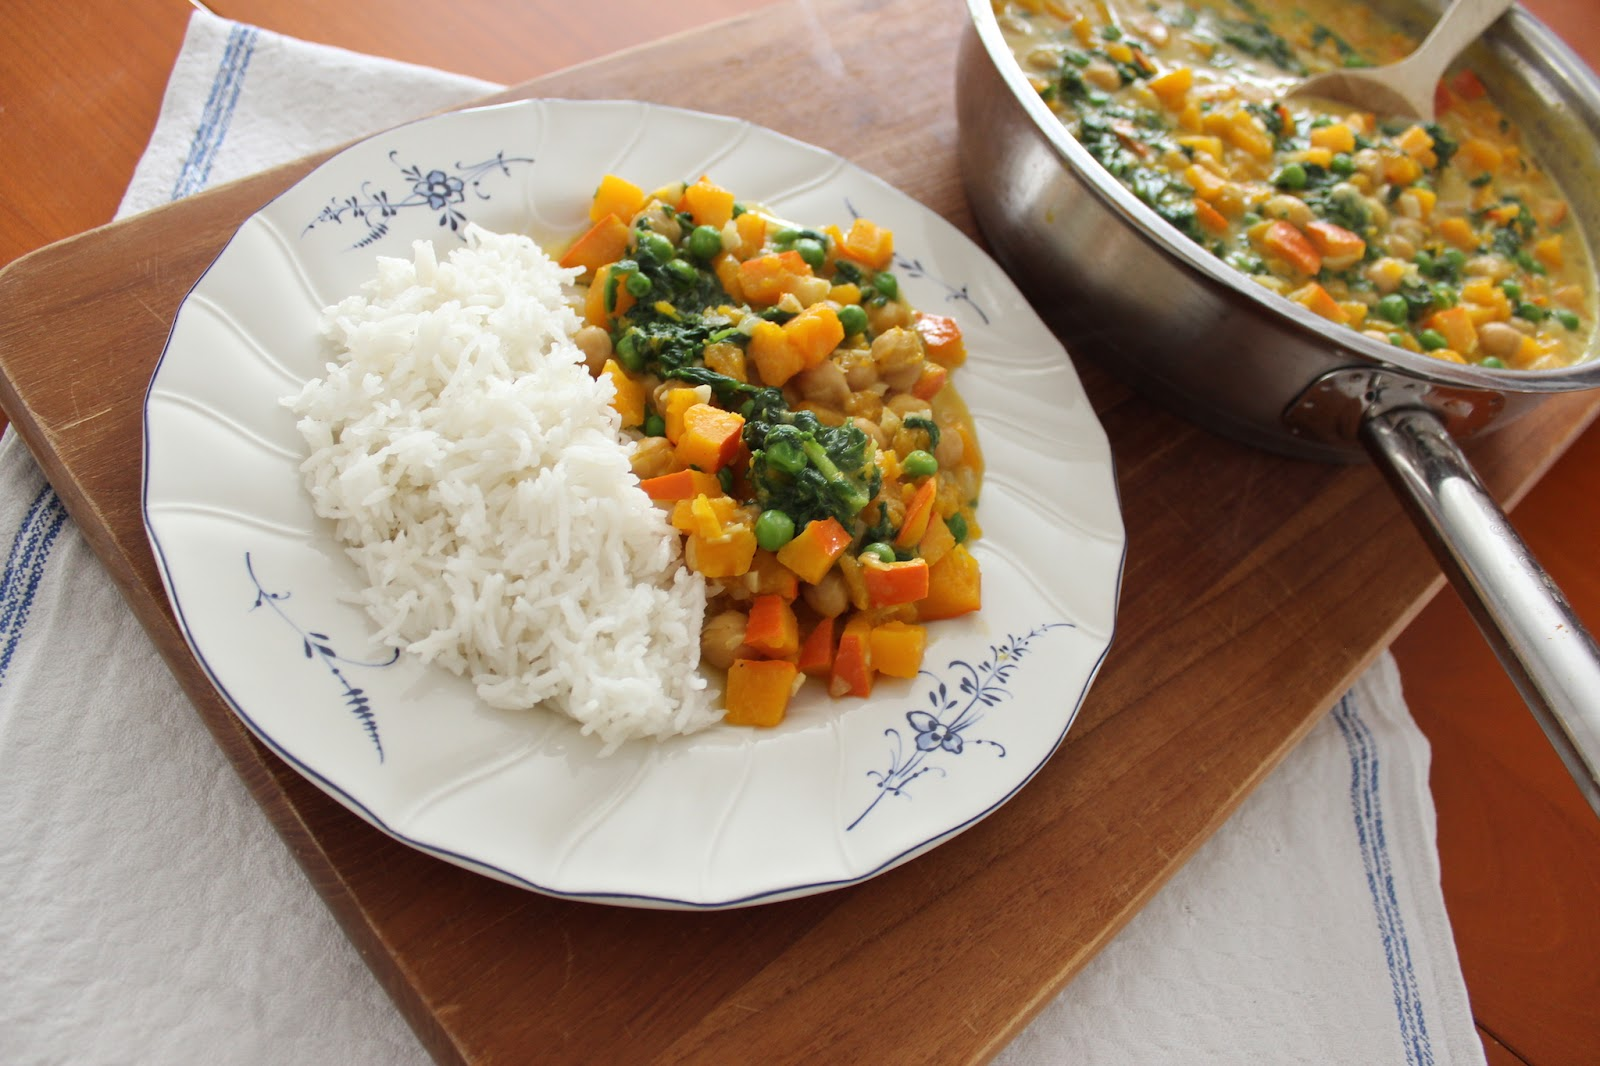 Vegan curry chickpeas pumpkin basmati rice http://theblondelion.blogspot.com/2015/01/food-vegan-curry-chickpeas-pumpkin.html